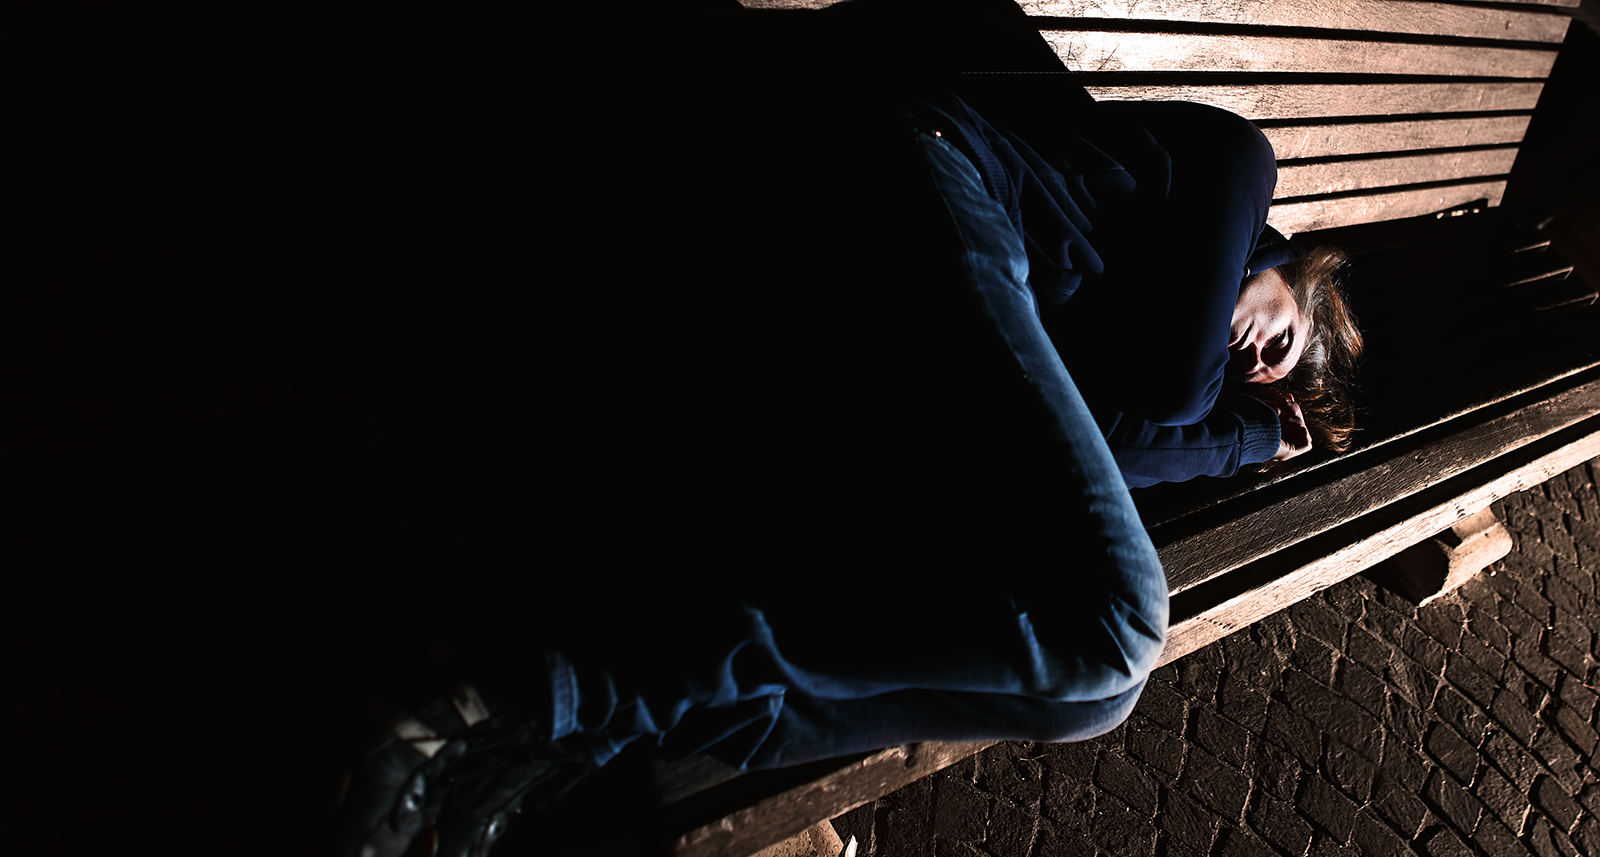 Homeless girl sleeping on a bench in the night mysterious atmosphere